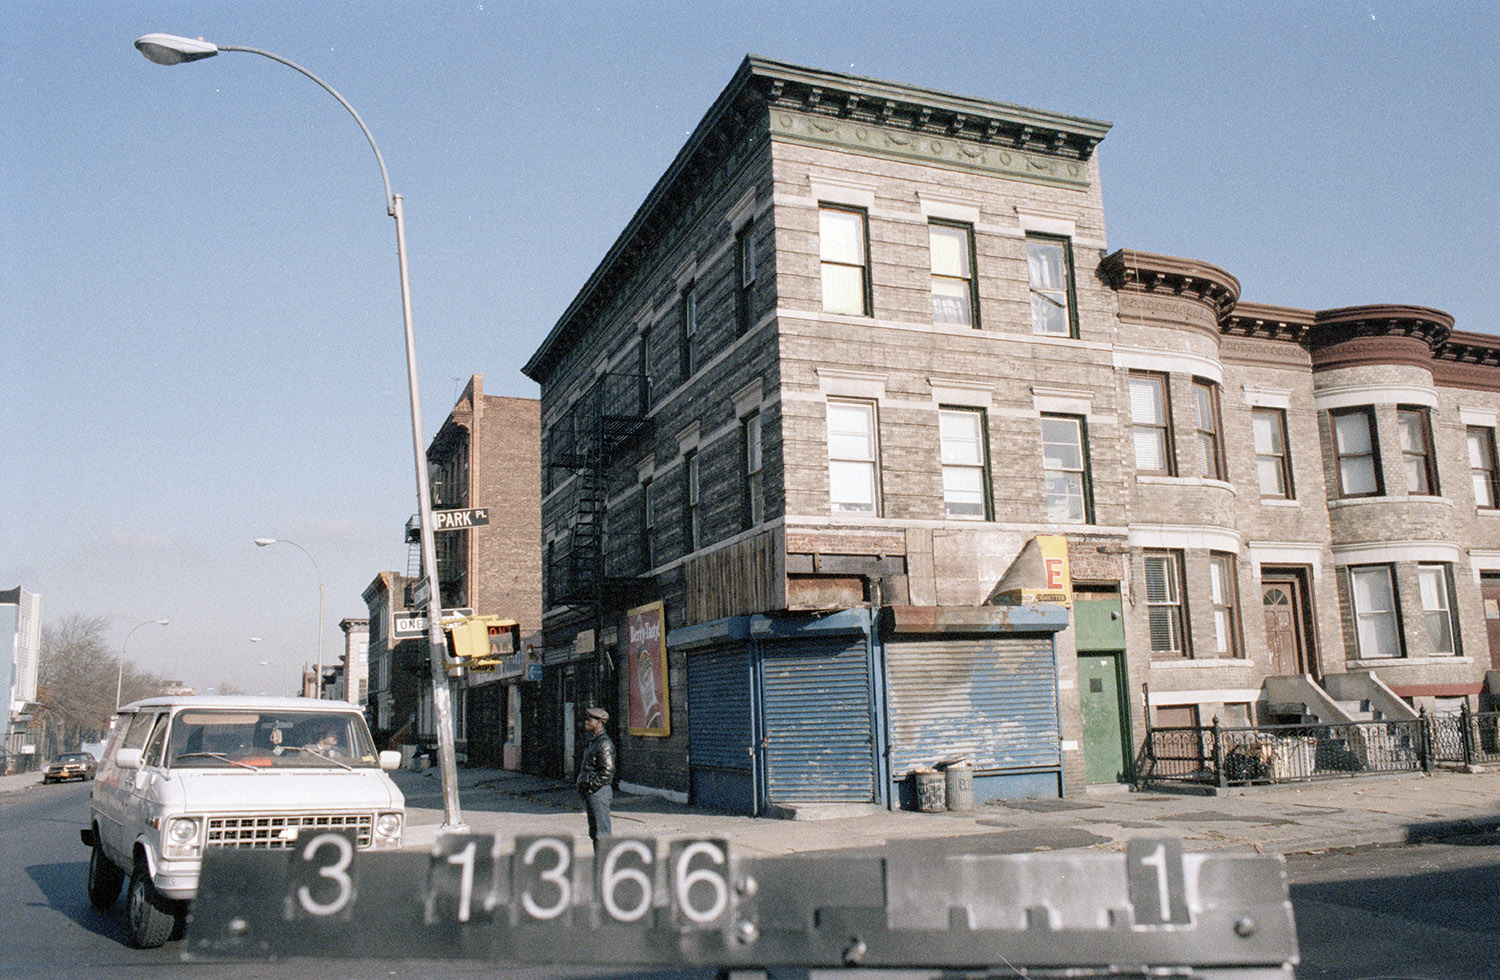 1323 Park Pl., mid-1980s. Photo: Department of Finance collection, NYC Municipal Archives.